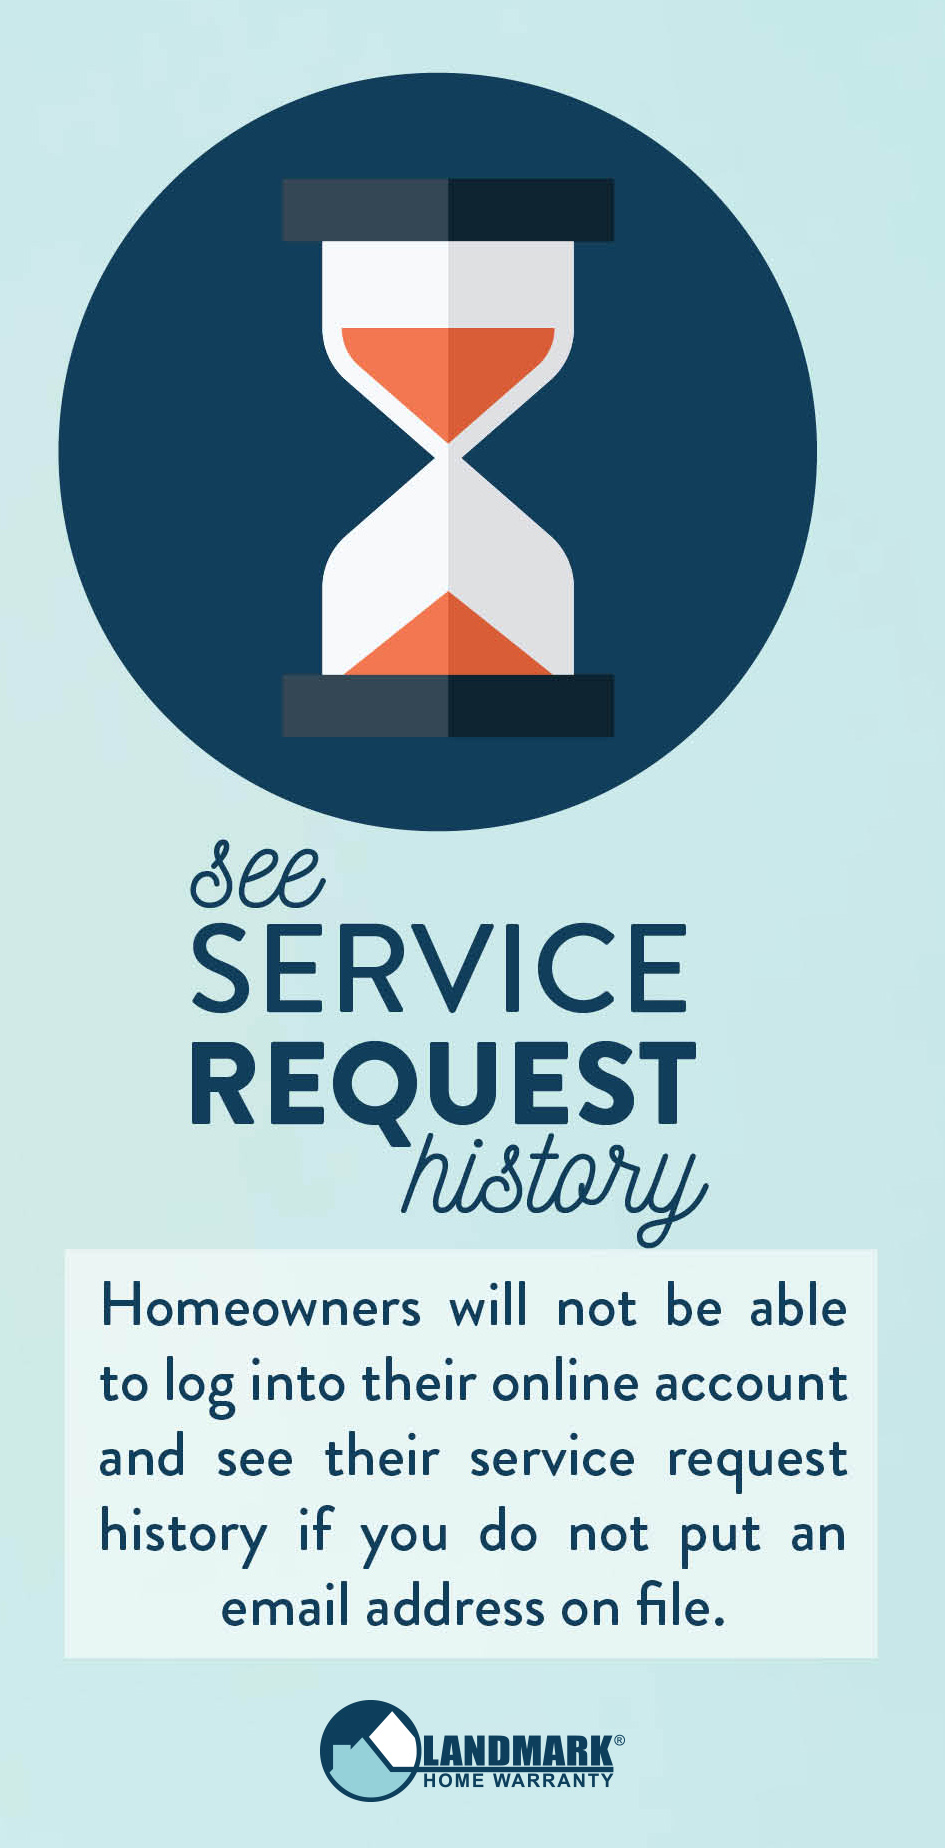 Without an email, homeowners cannot see their service request history.